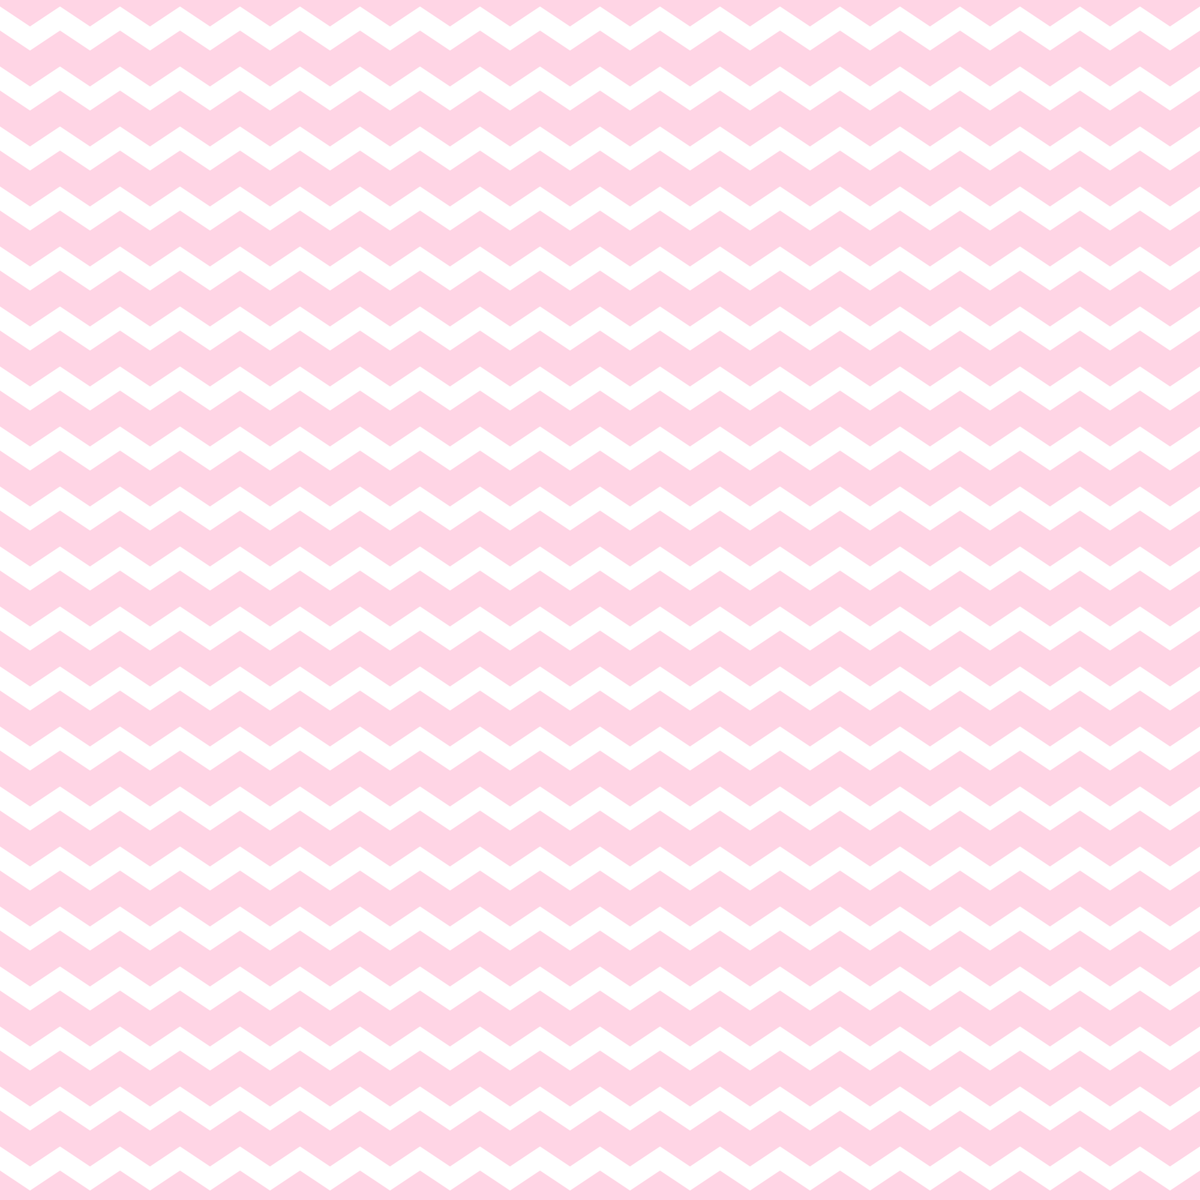 Download Pink And White Zig Zag Wallpaper Gallery